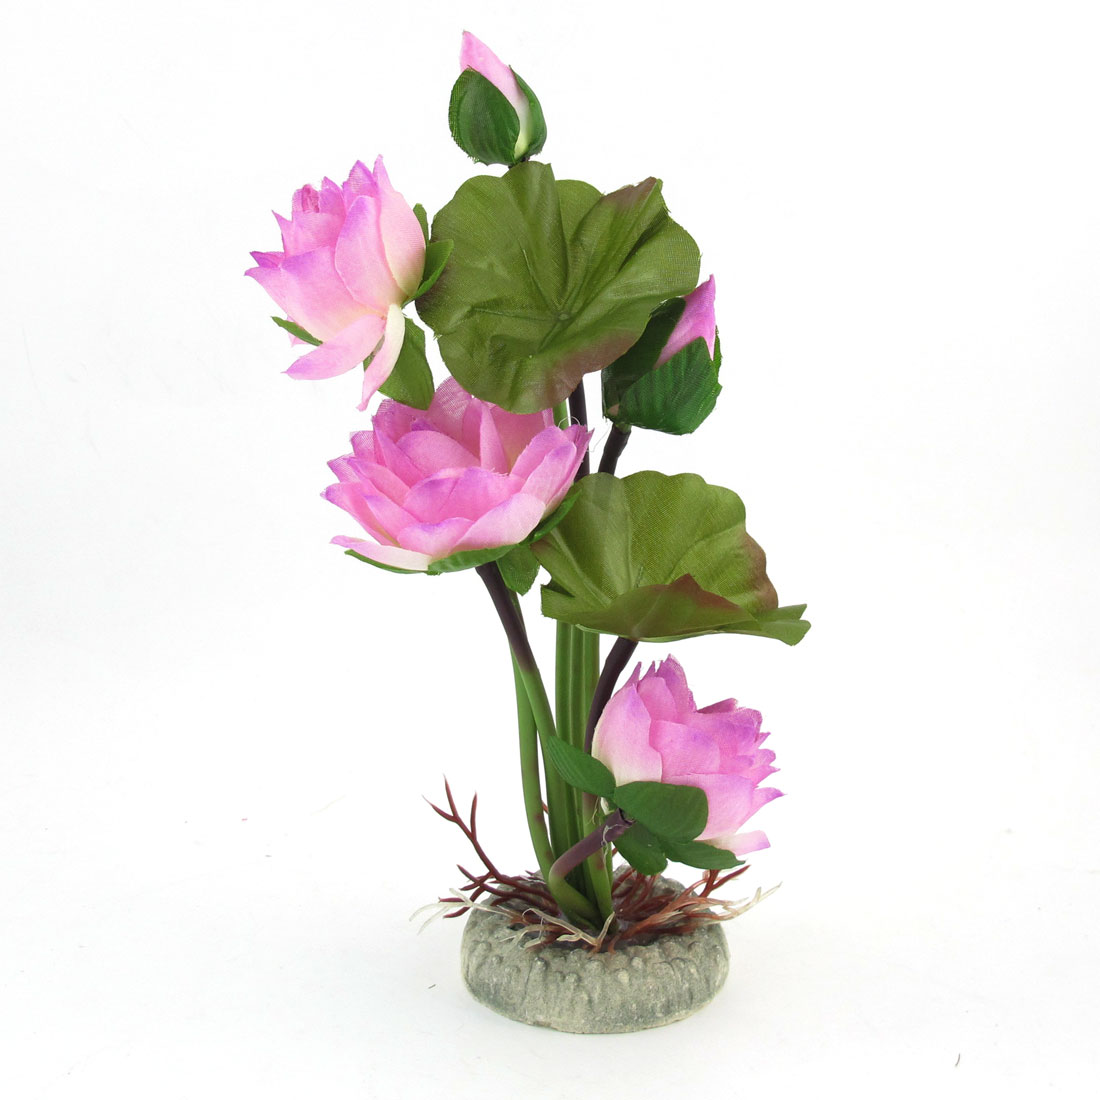 Fish Tank Simulation Pink Lotus Flowers Green Leaves Water Plant Decor